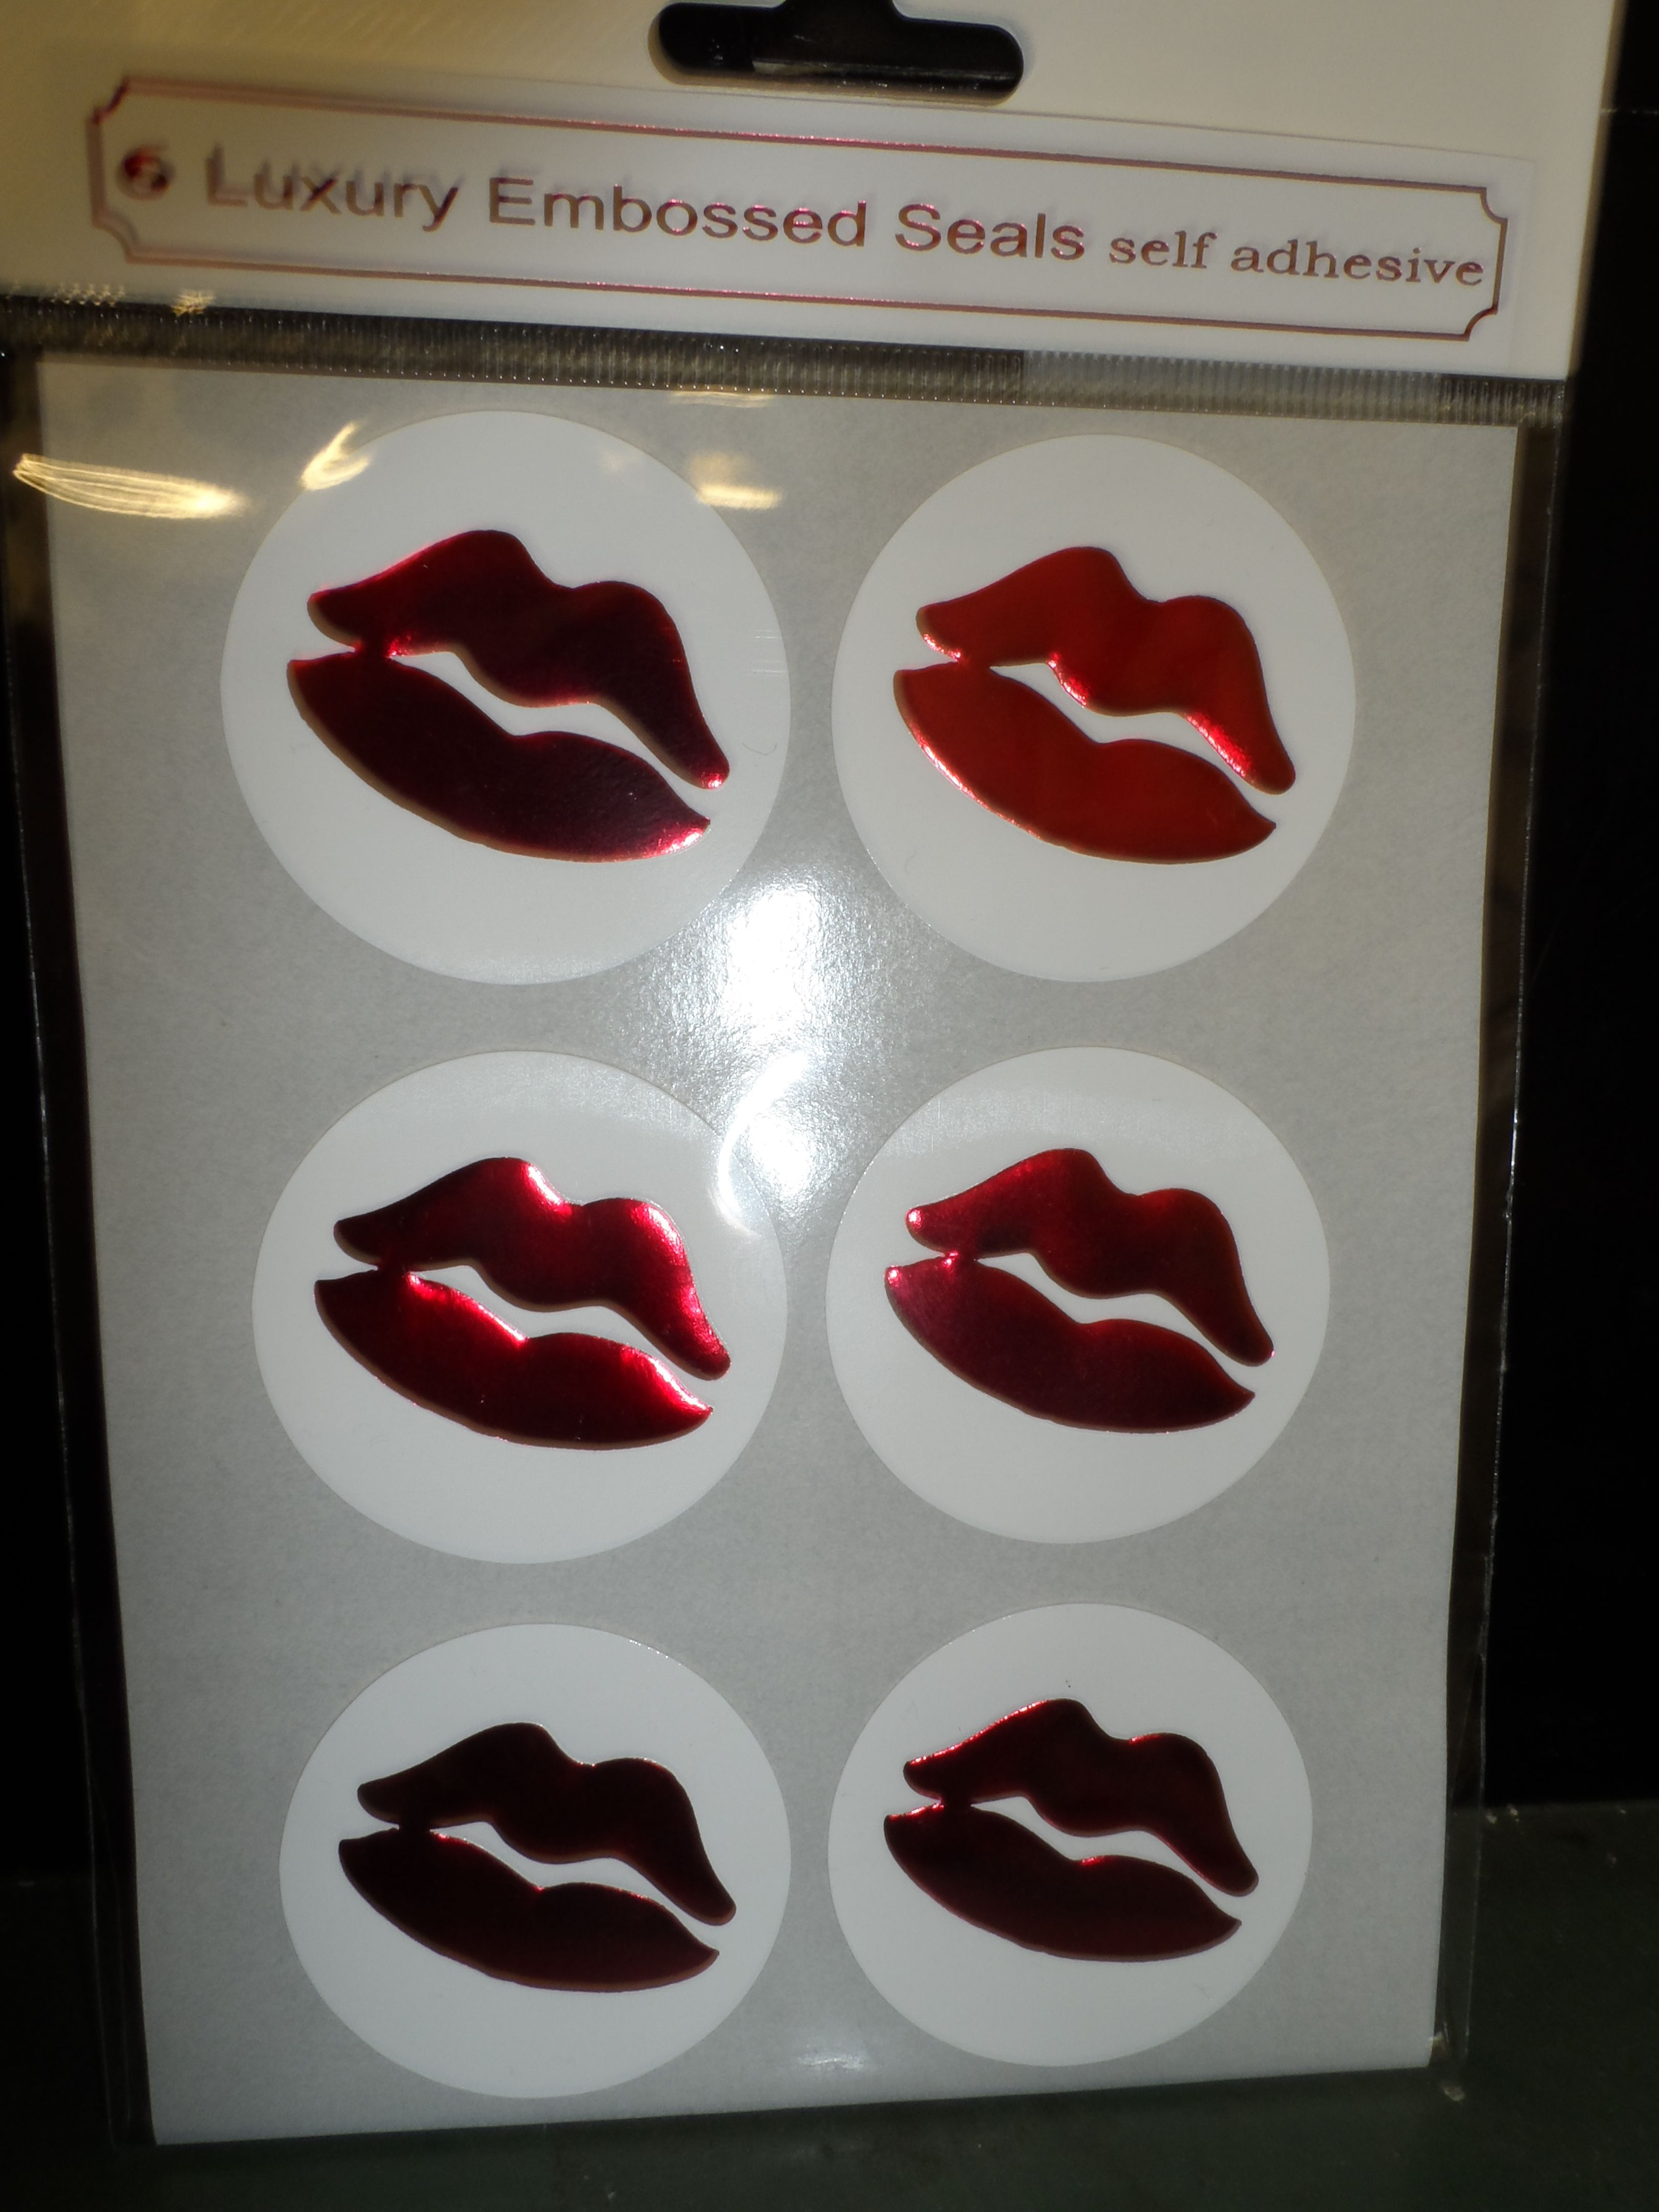 Want to seal your card or gift with a kiss?! Foiled and embossed lips